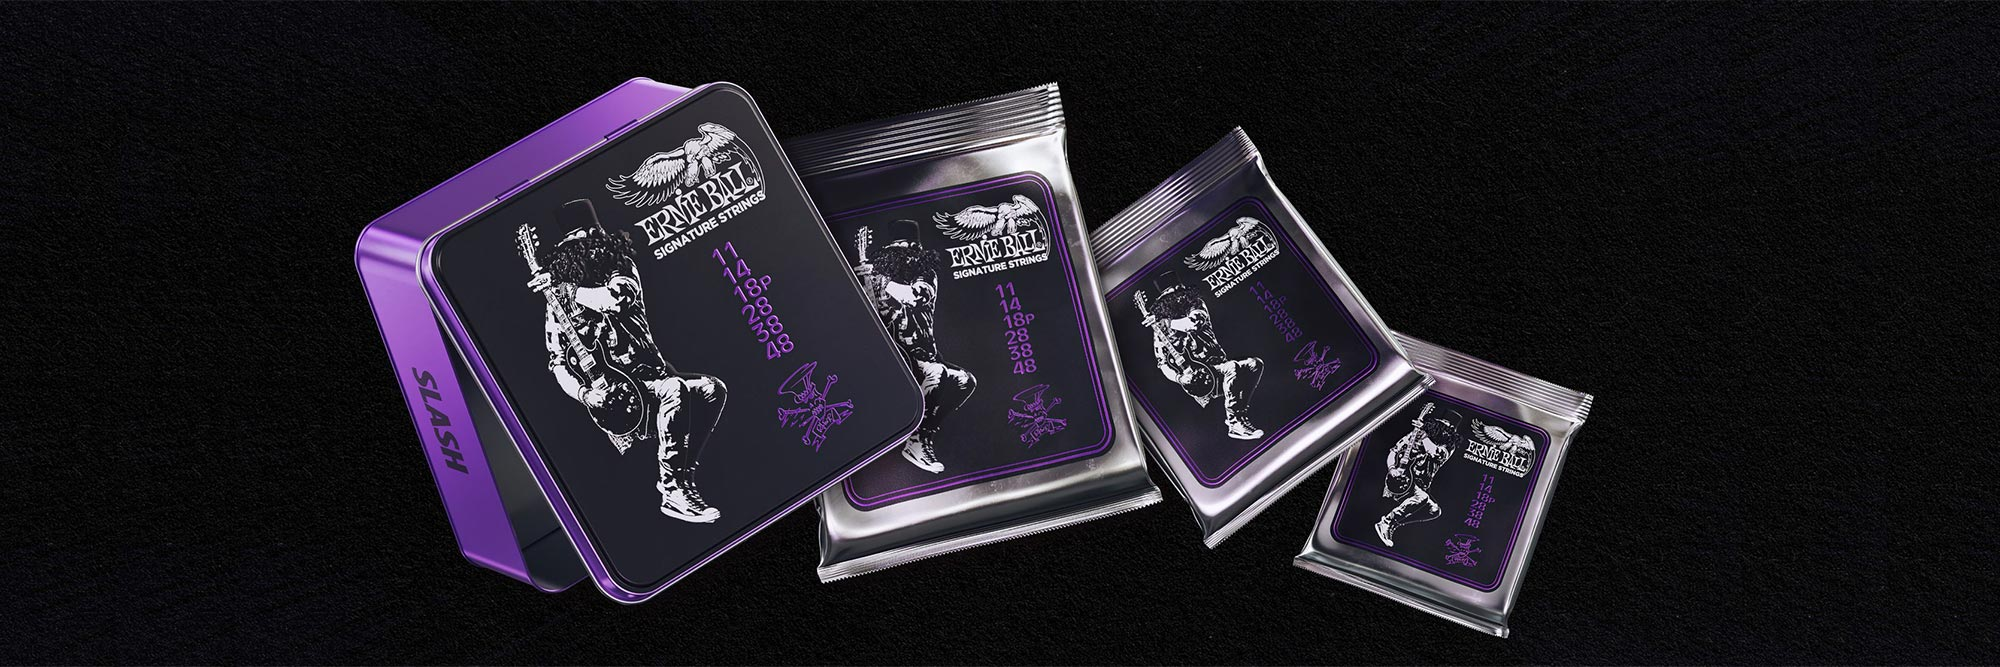 LIMITED EDITION: Slash Signature Gitaarsnaren van Ernie Ball!